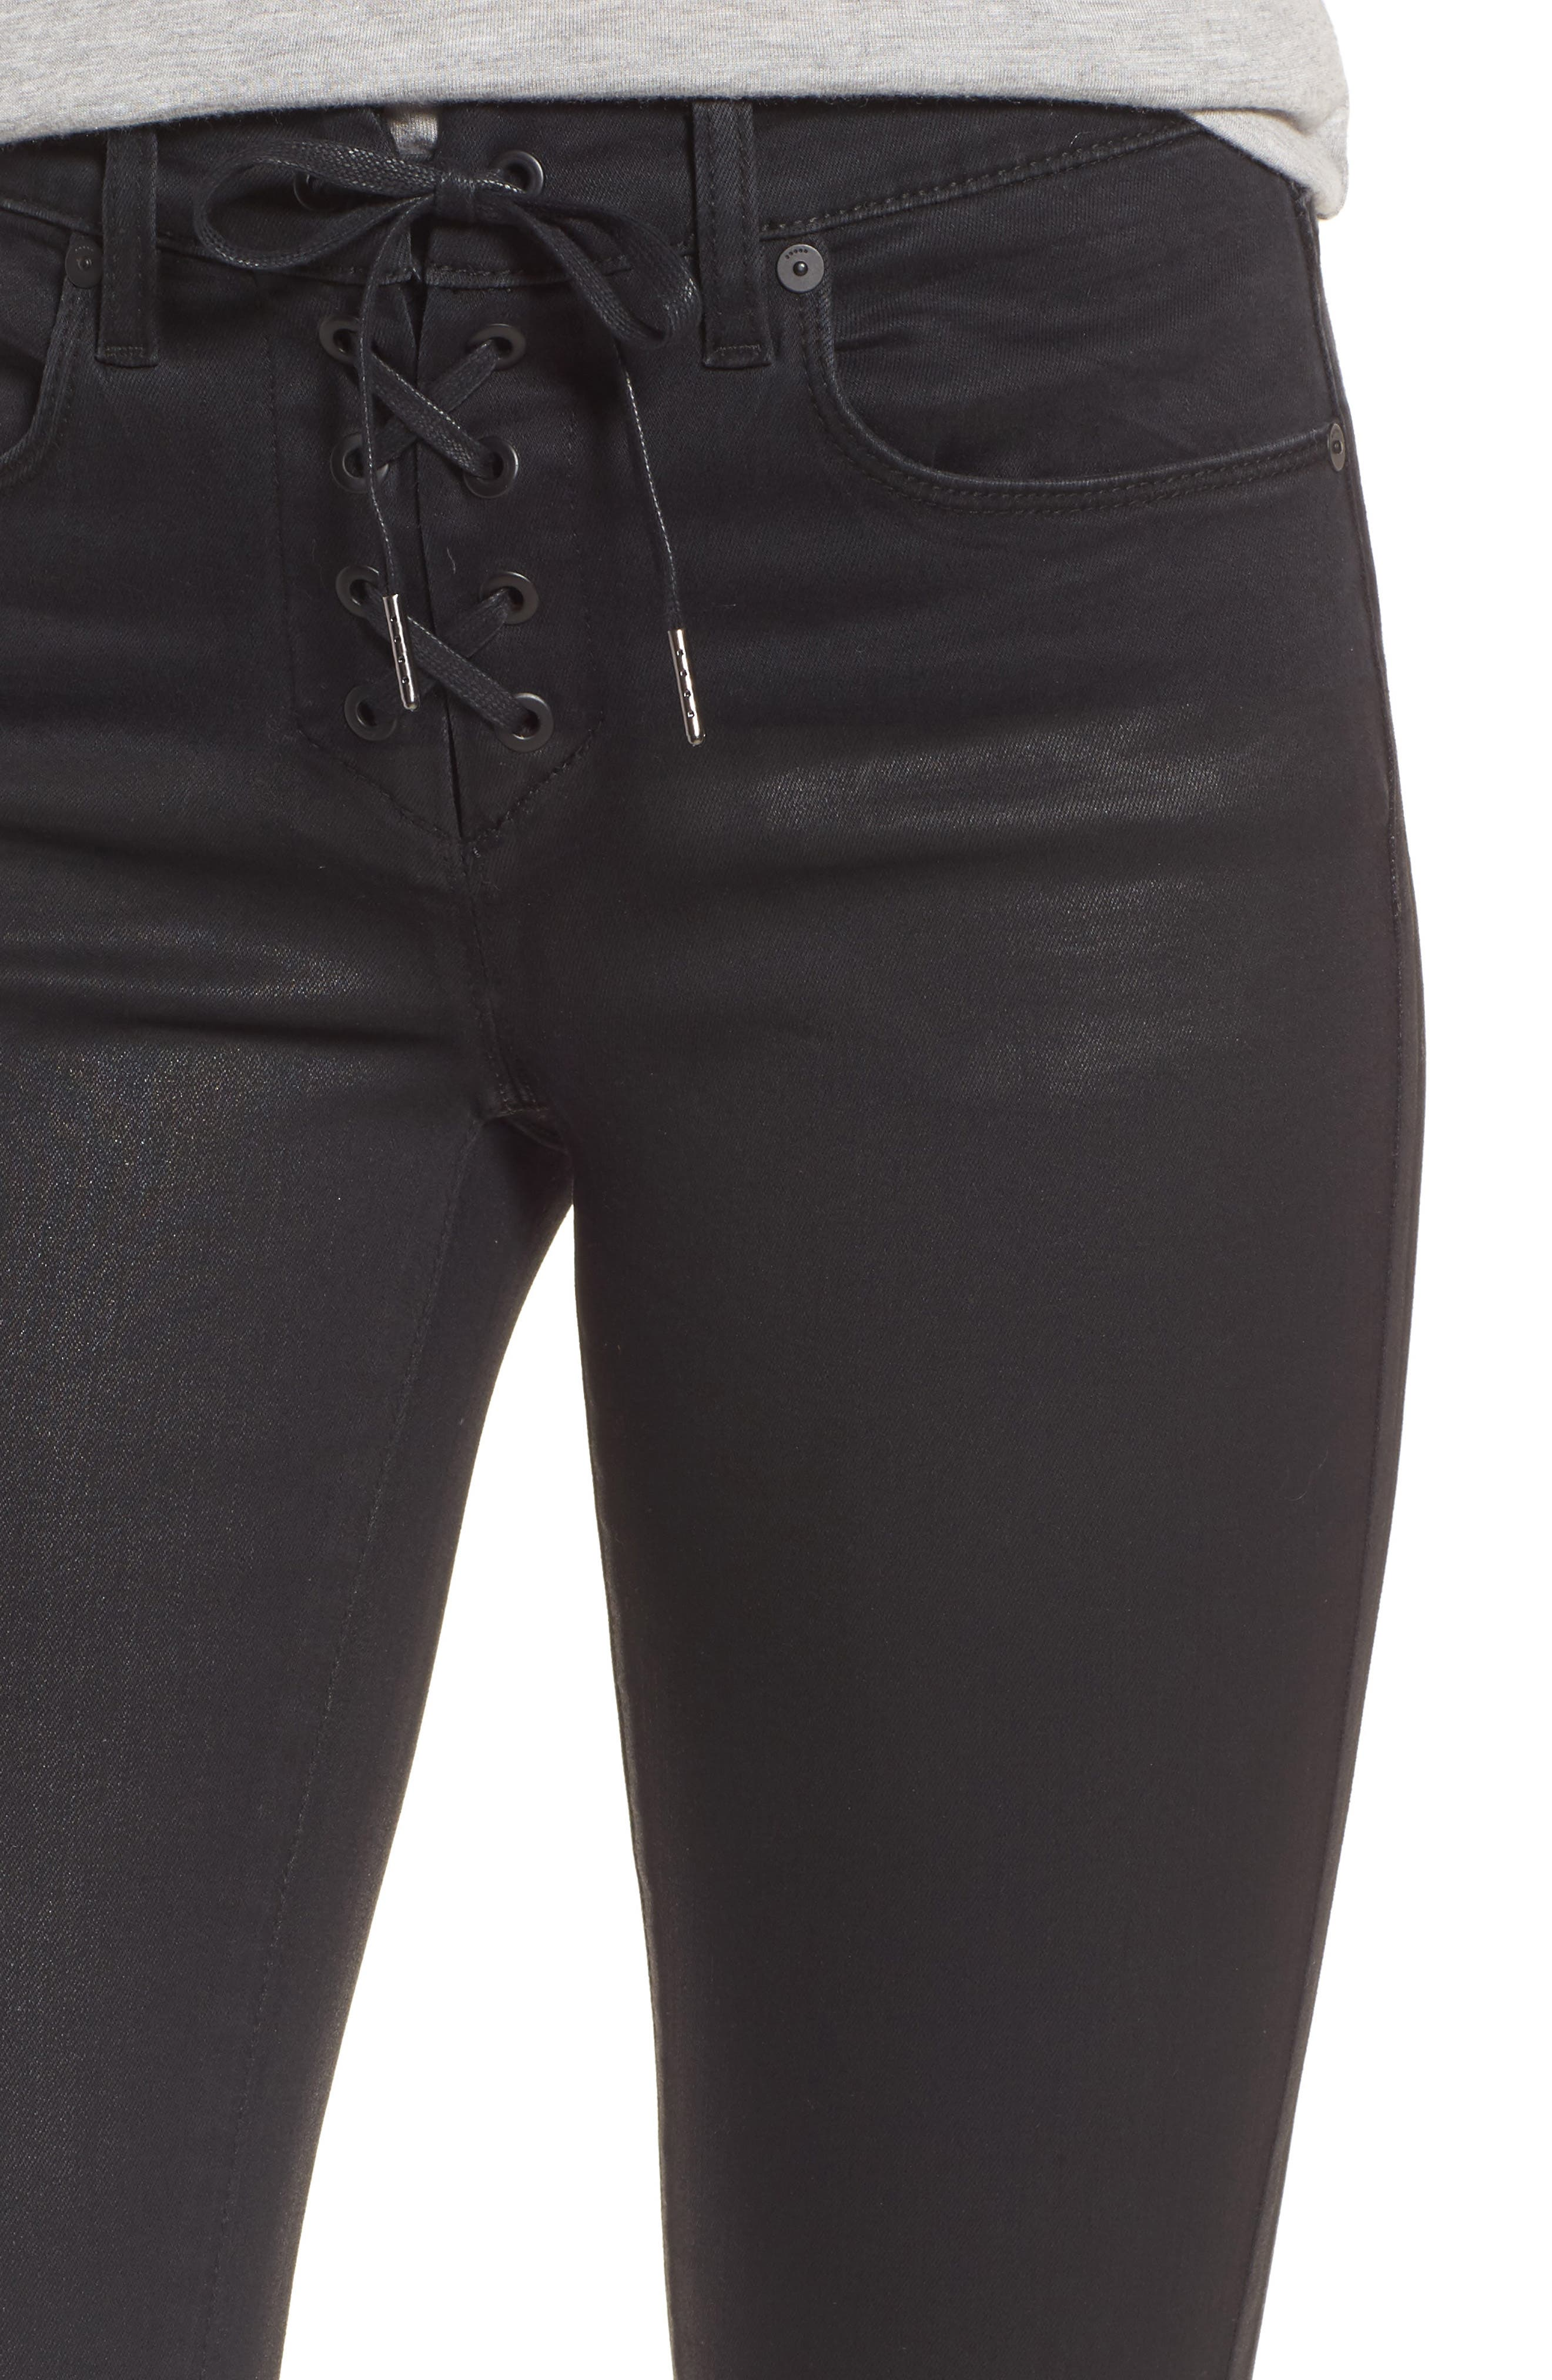 Alternate Image 4  - BLANKNYC Black Jack Lace-Up Skinny Jeans (Smoked Out)